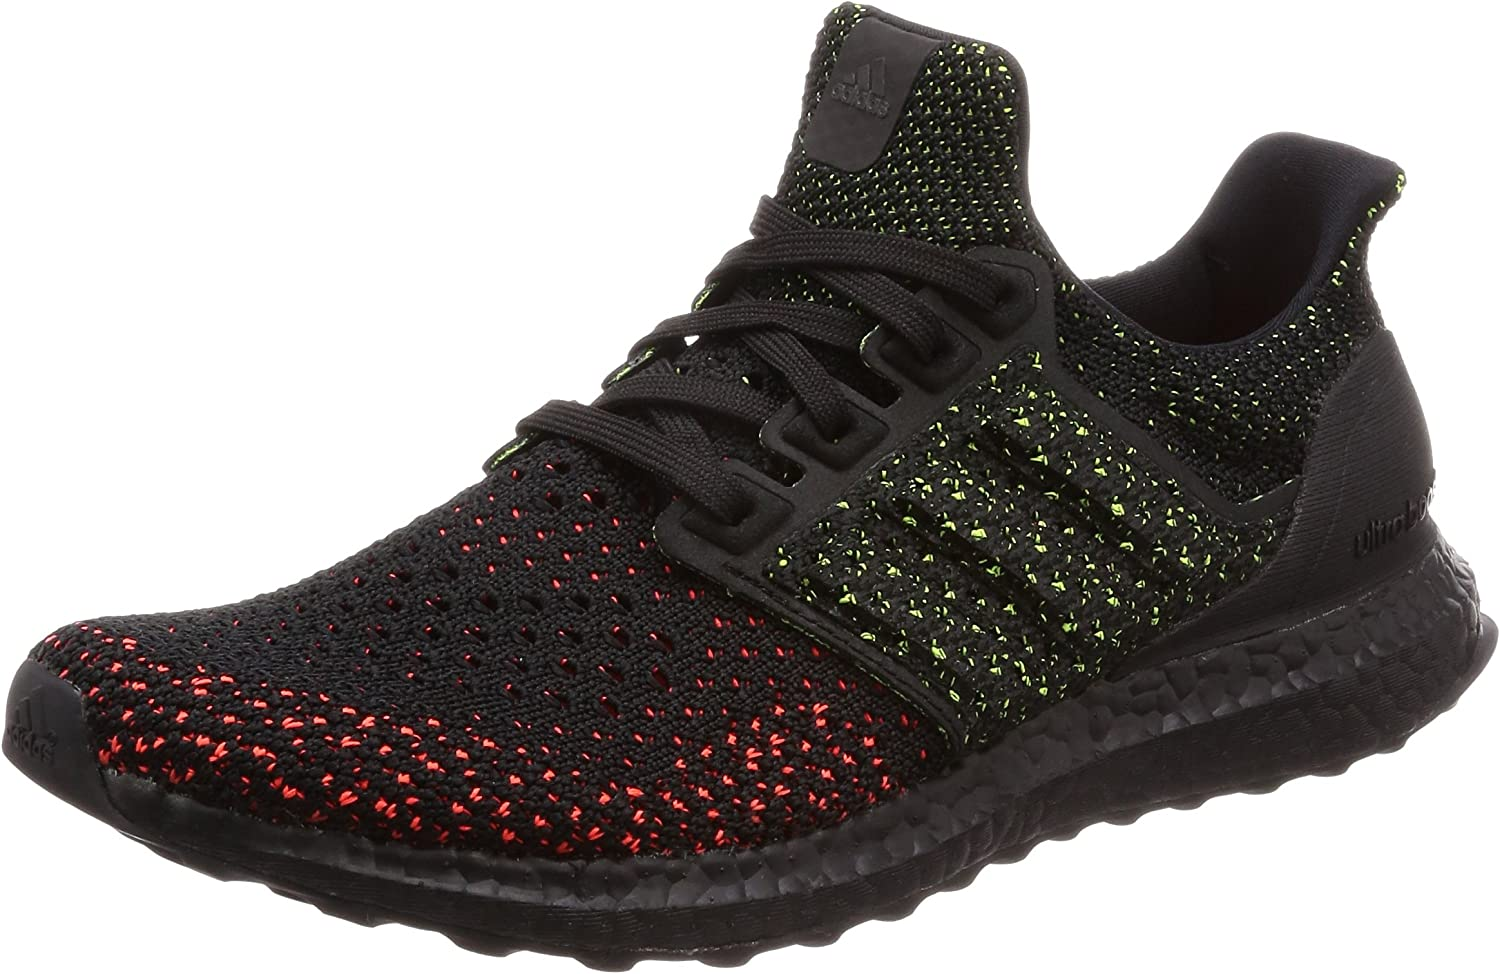 7ef9f8b028368 Adidas Men's Ultraboost Ultraboost Ultraboost Clima Training shoes ...